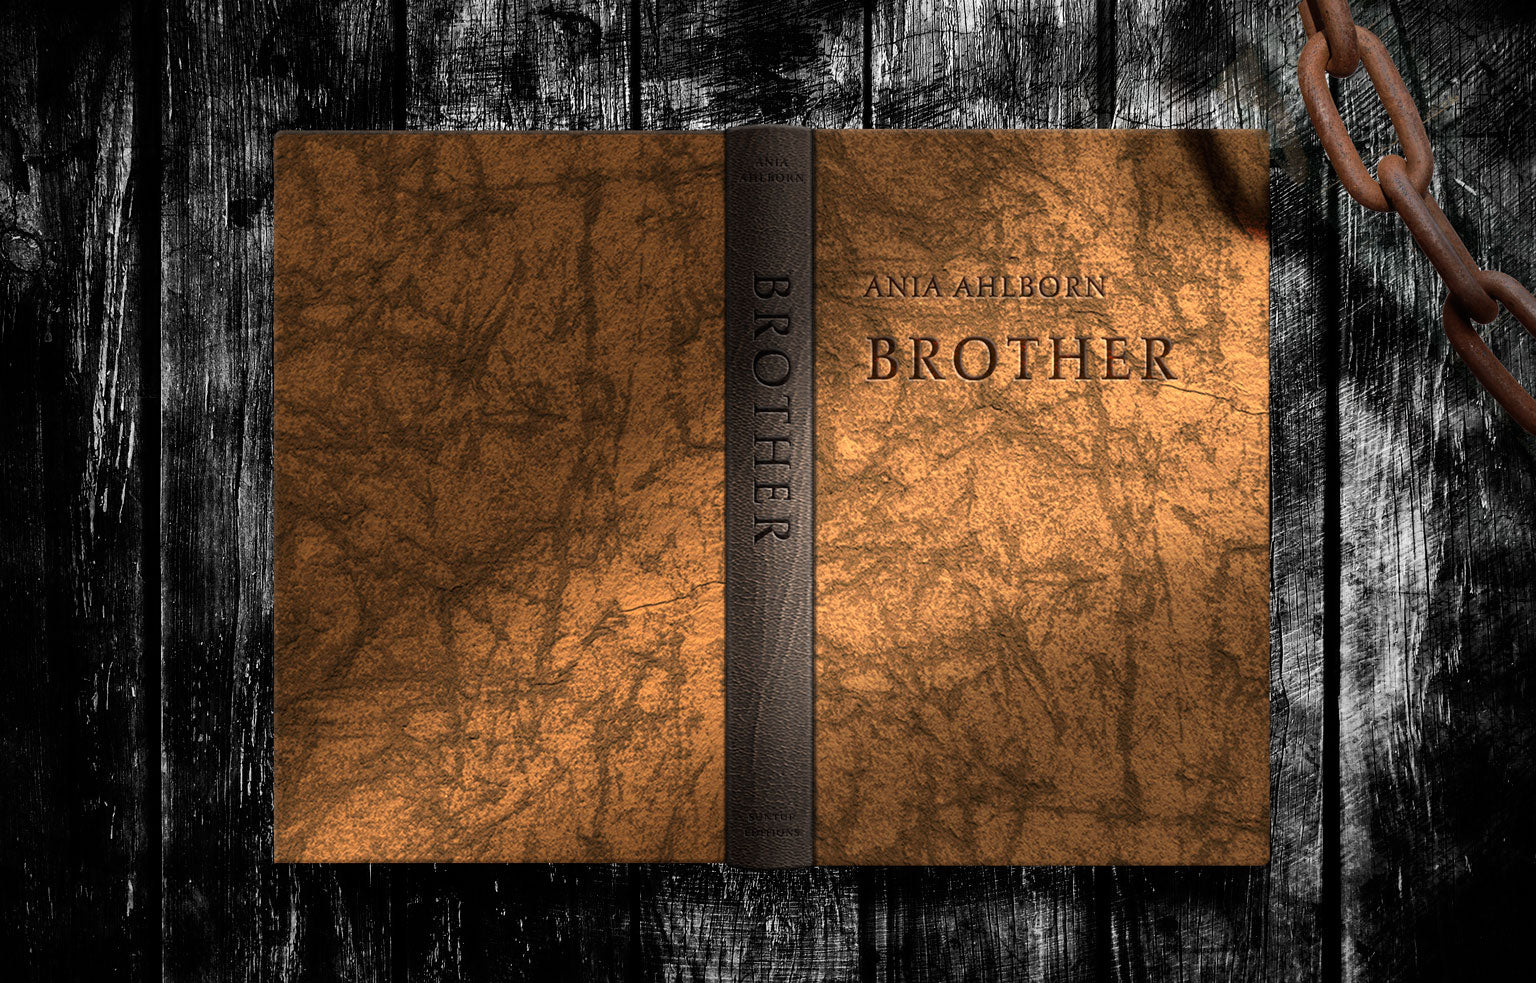 Ania Ahlborn - Brother - Suntup Editions